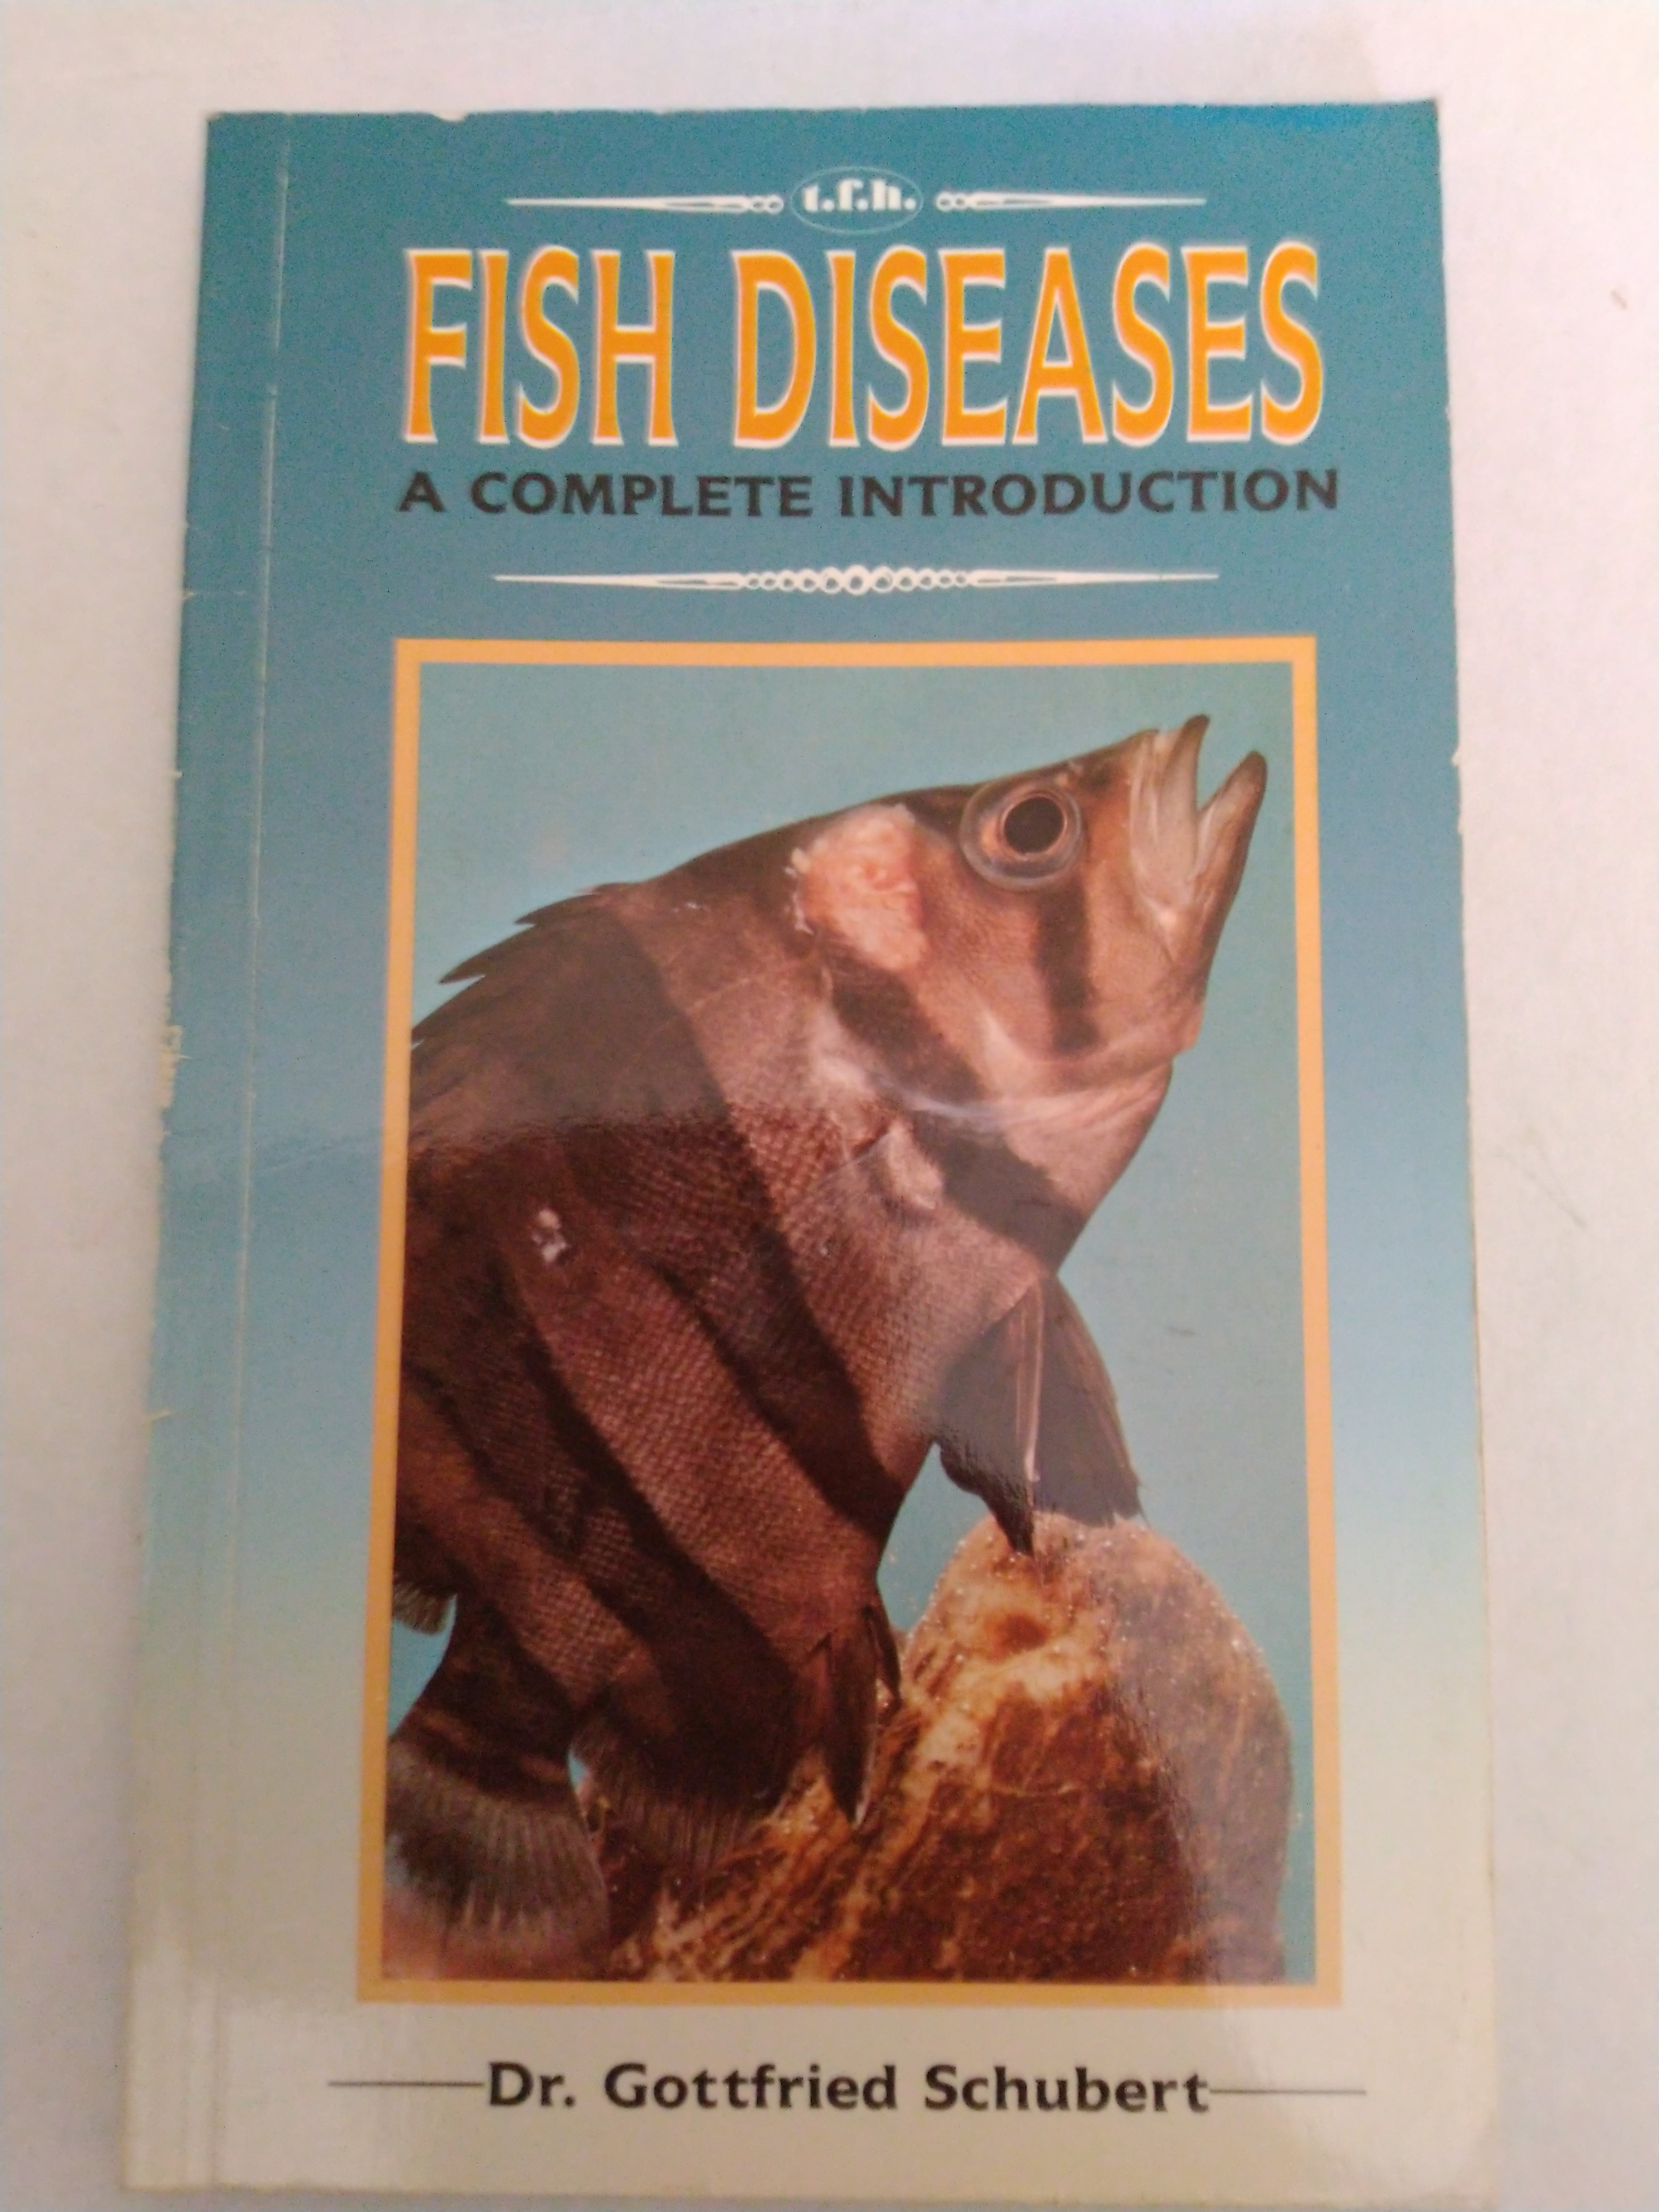 Fish Diseases A Complete Introduction by Gottfried Schubert